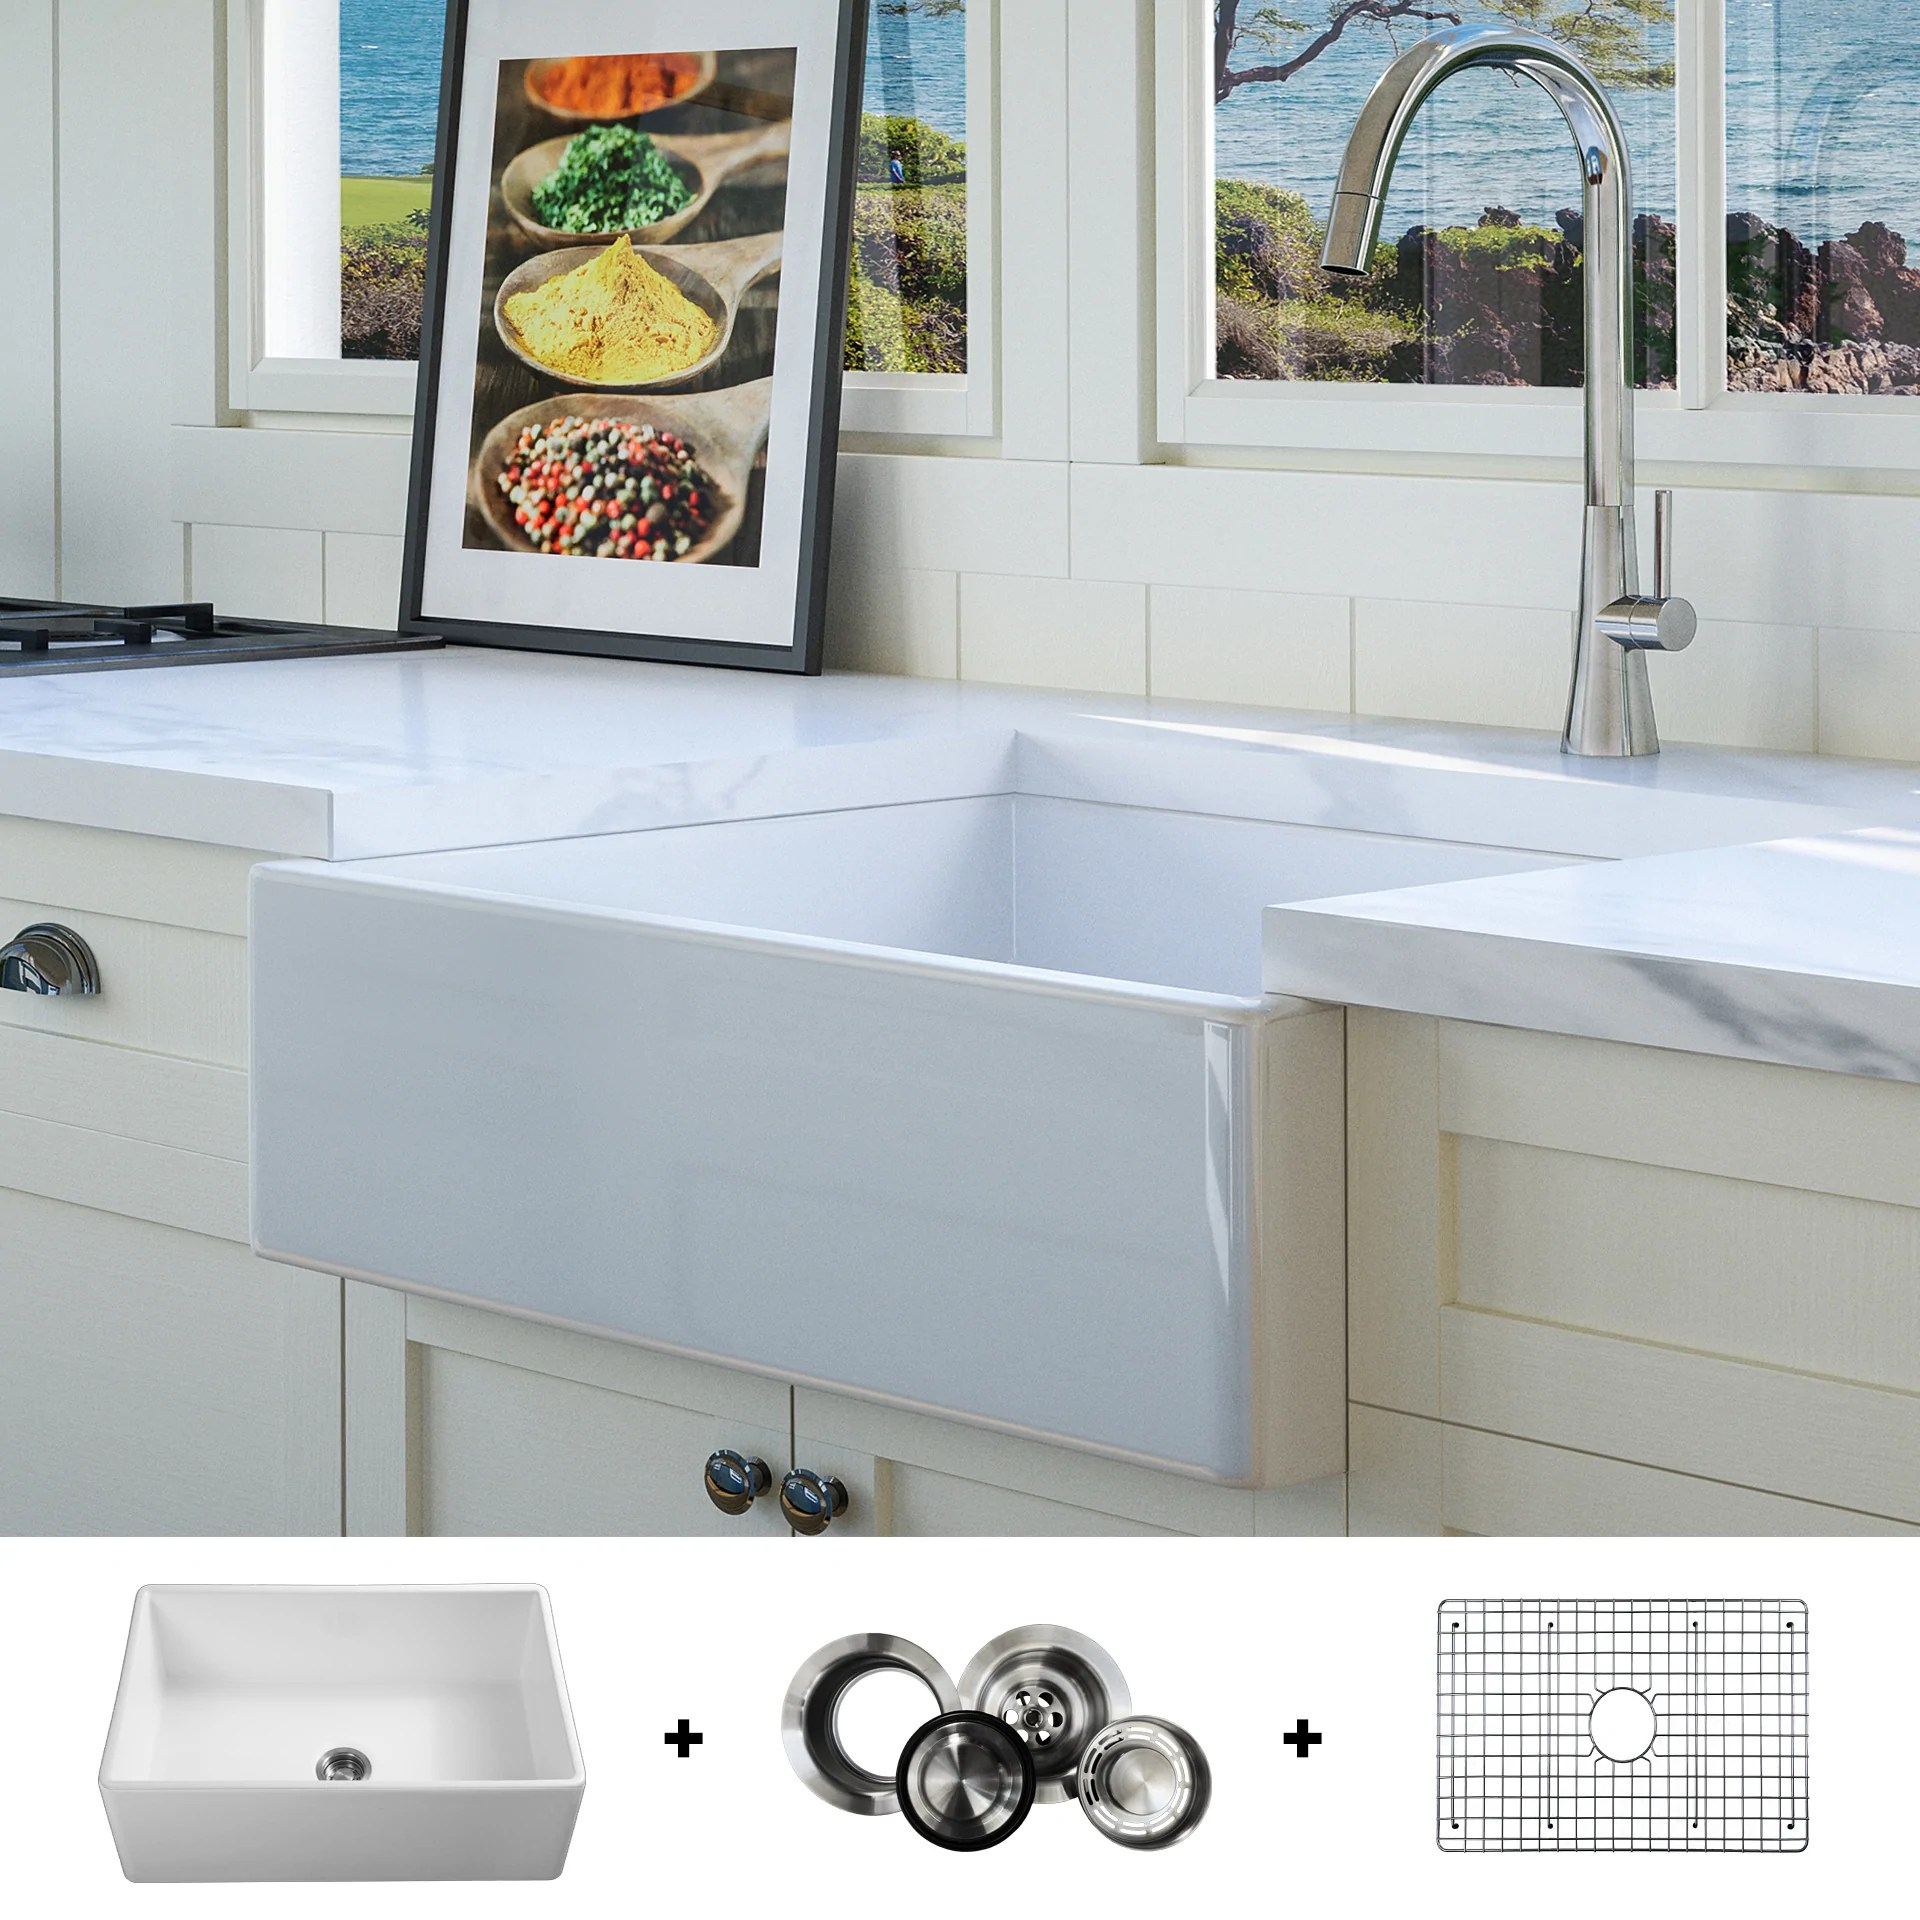 White Farmhouse Sinks For Sale Fsw1000 Luxury 26 Inch Pure Fireclay Modern Farmhouse Sink In White Single Bowl Free Grid